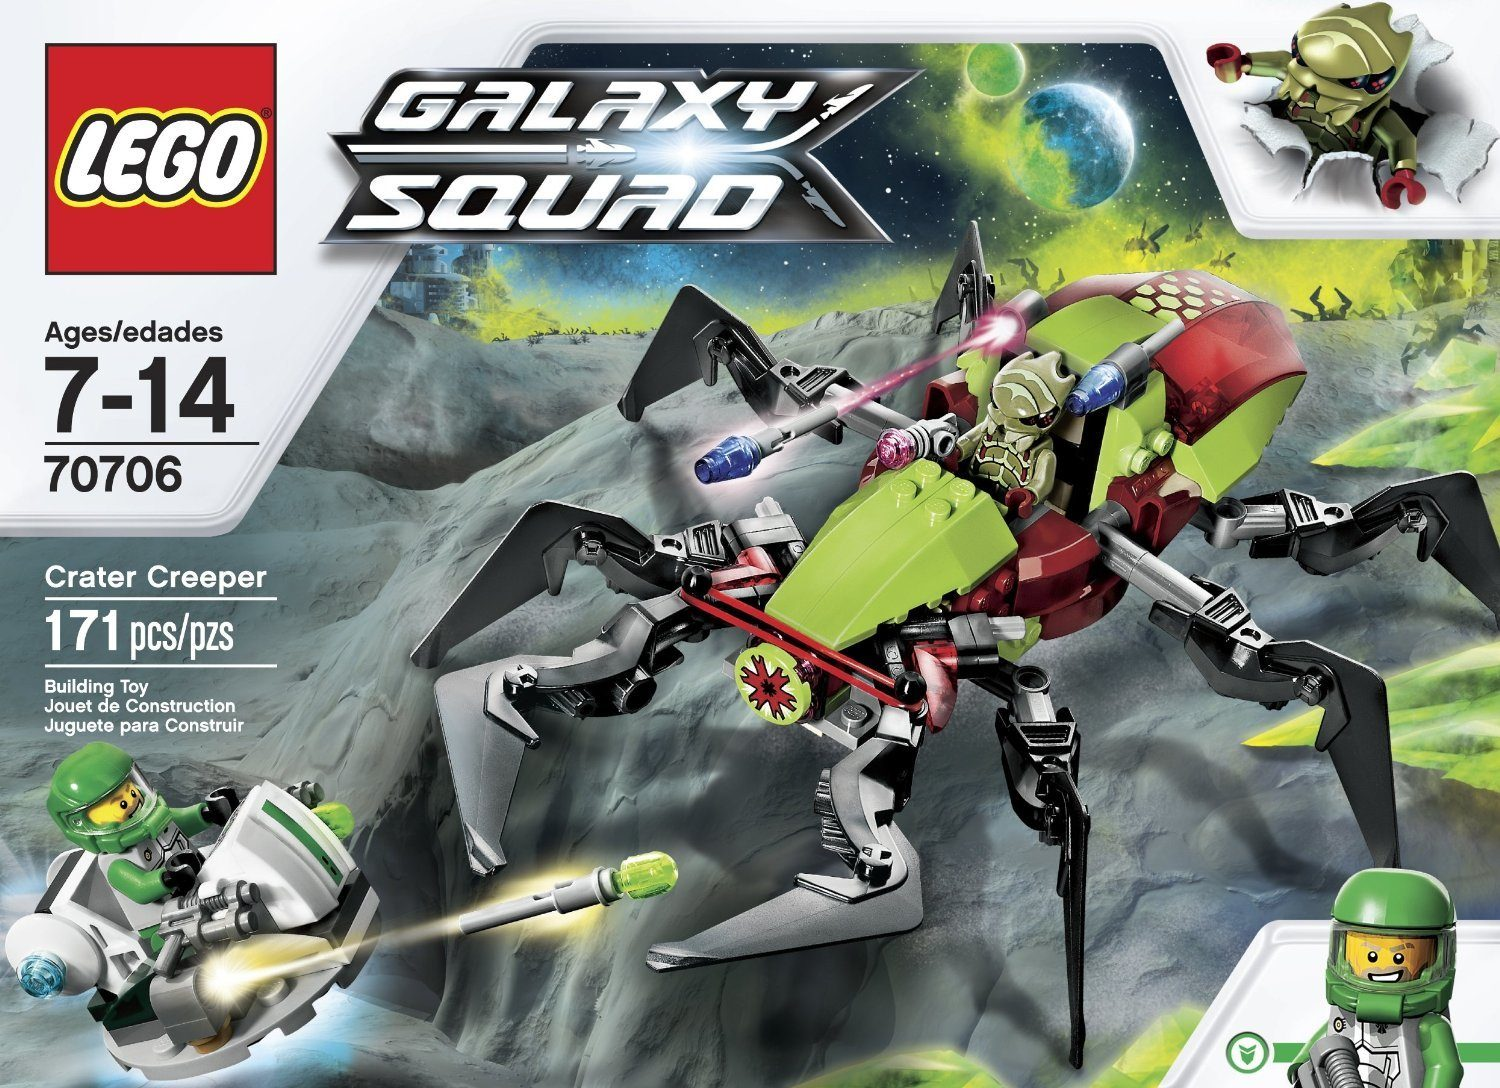 LEGO Galaxy Squad Crater Creeper Only $10.49 + FREE Shipping with Prime!